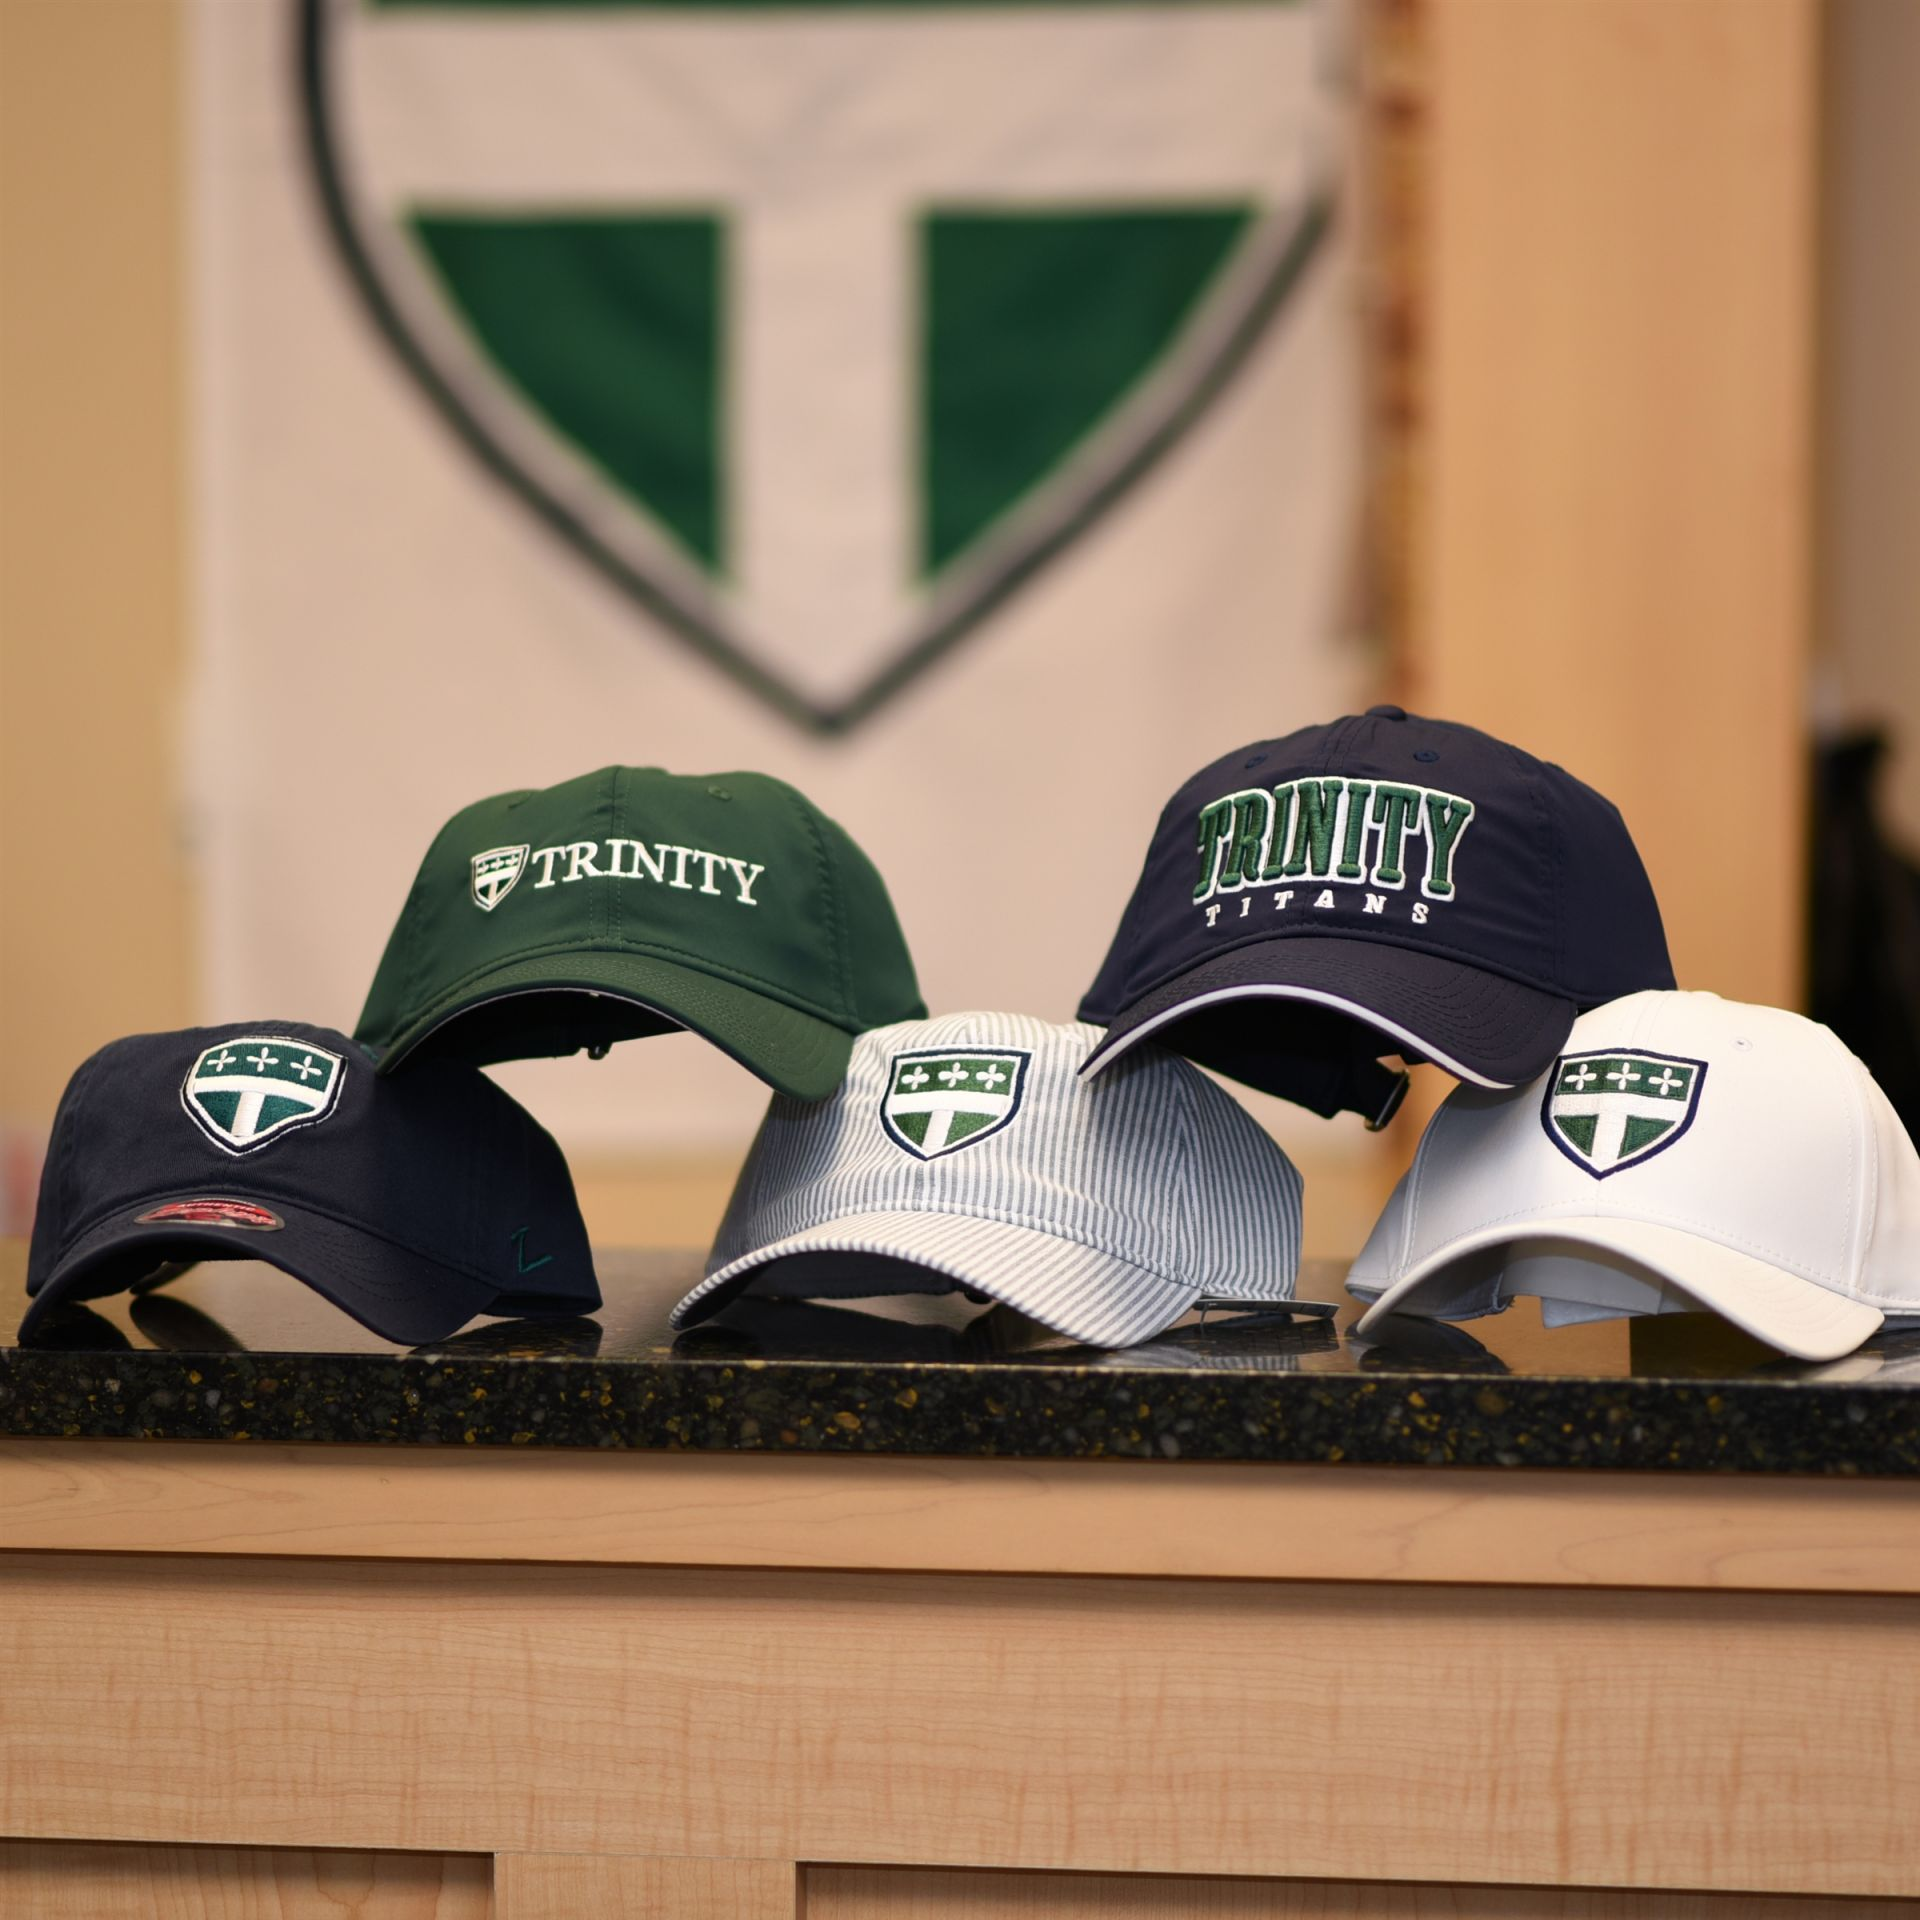 Selected hats ($17.50 - $20.00)